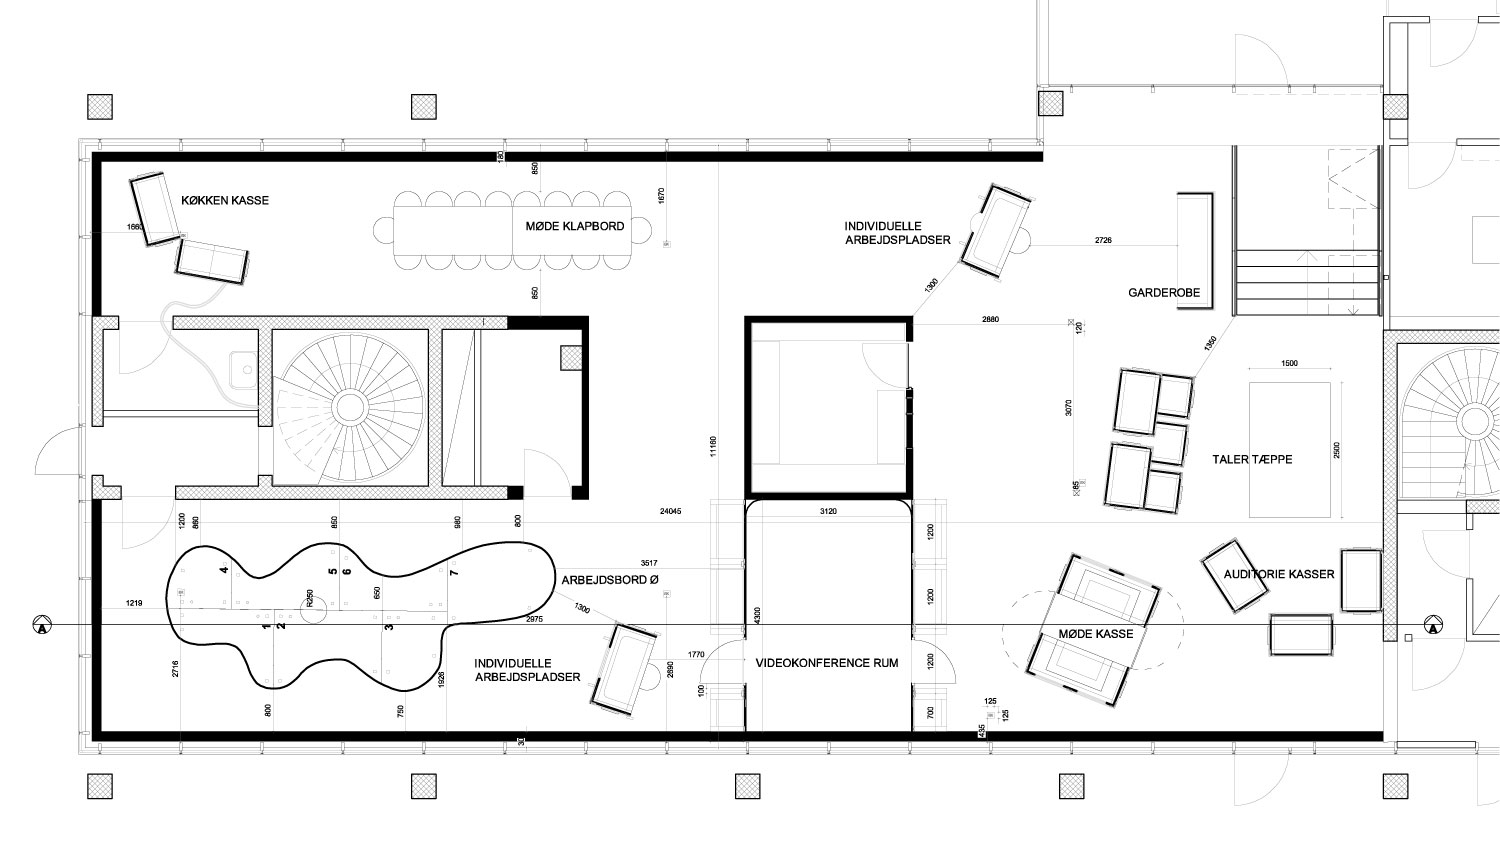 plug and play office interior by bosch fjord housevariety floor plan drawing courtesy of bosch fjord